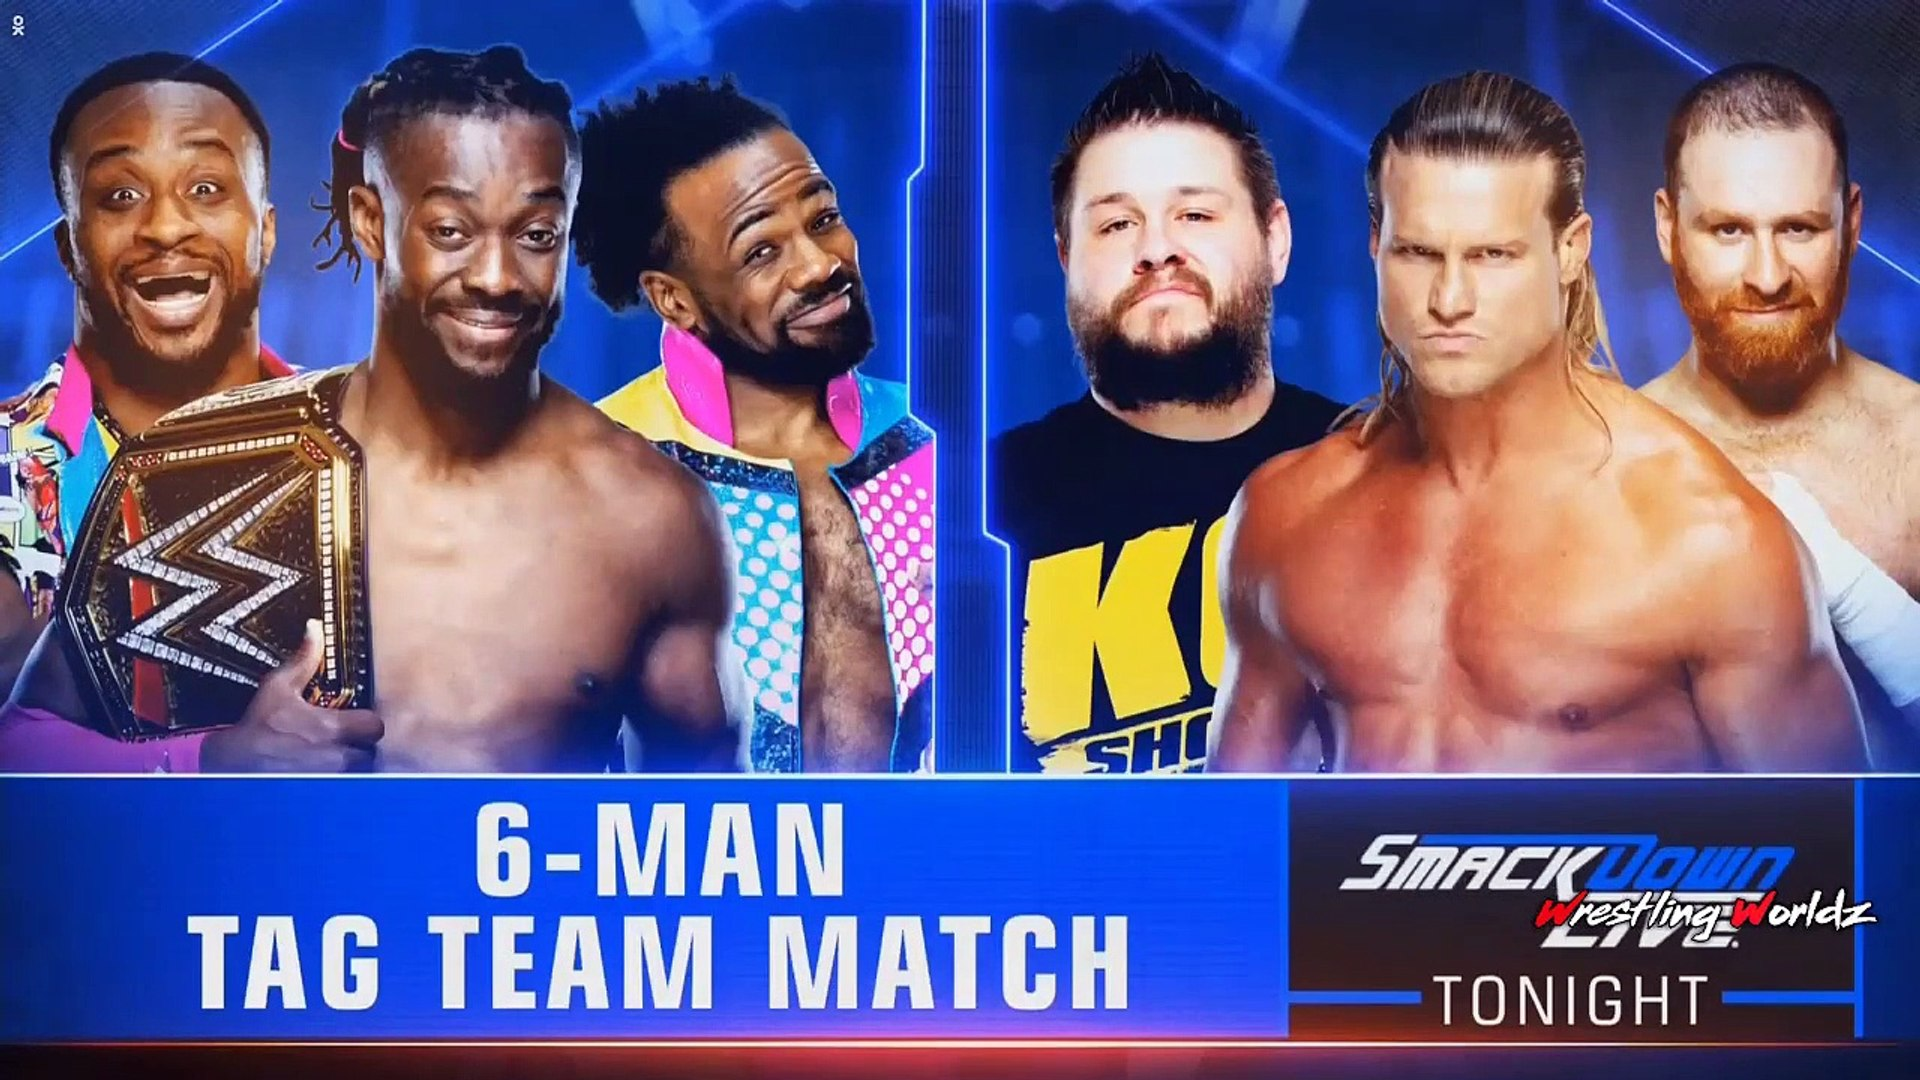 WWE+Smackdown+Highlights+11th+June+2019+HD+_++WWE+Smackdown+Live+Highlight+06+⁄11+⁄19+HD